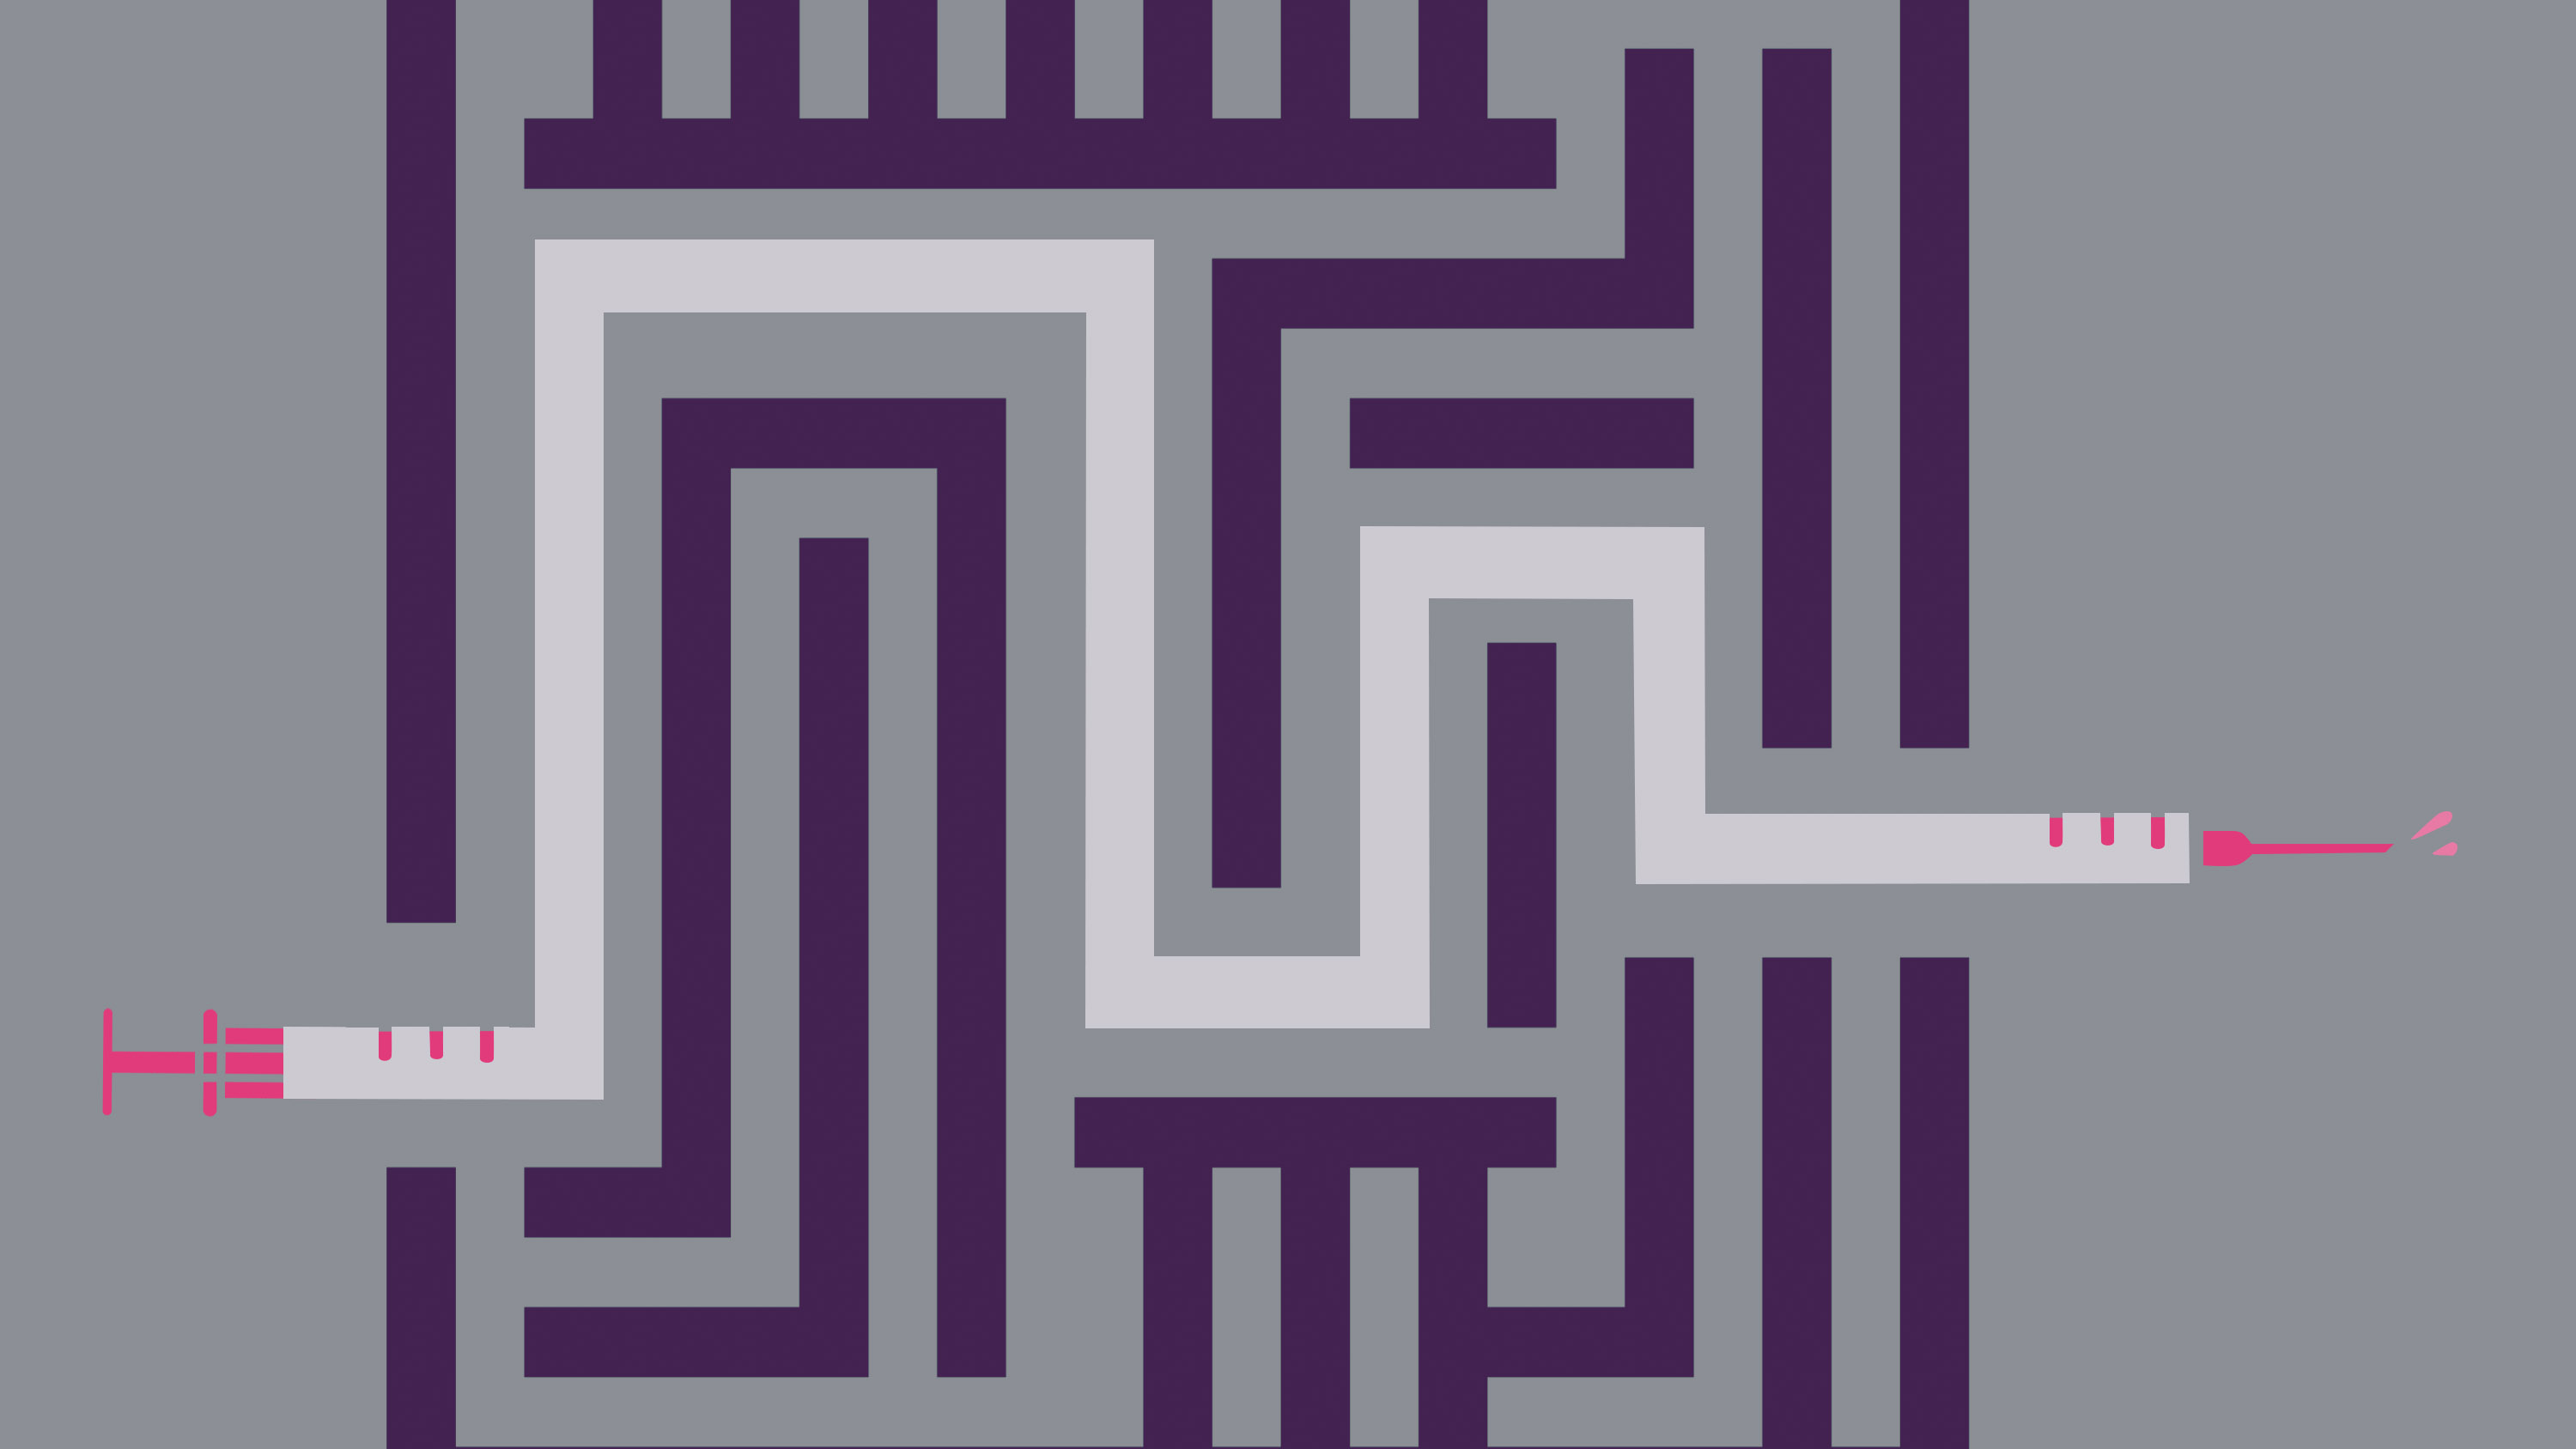 image of a purple maze with the path highlighted as a white vaccination needle with red marks on a gray background